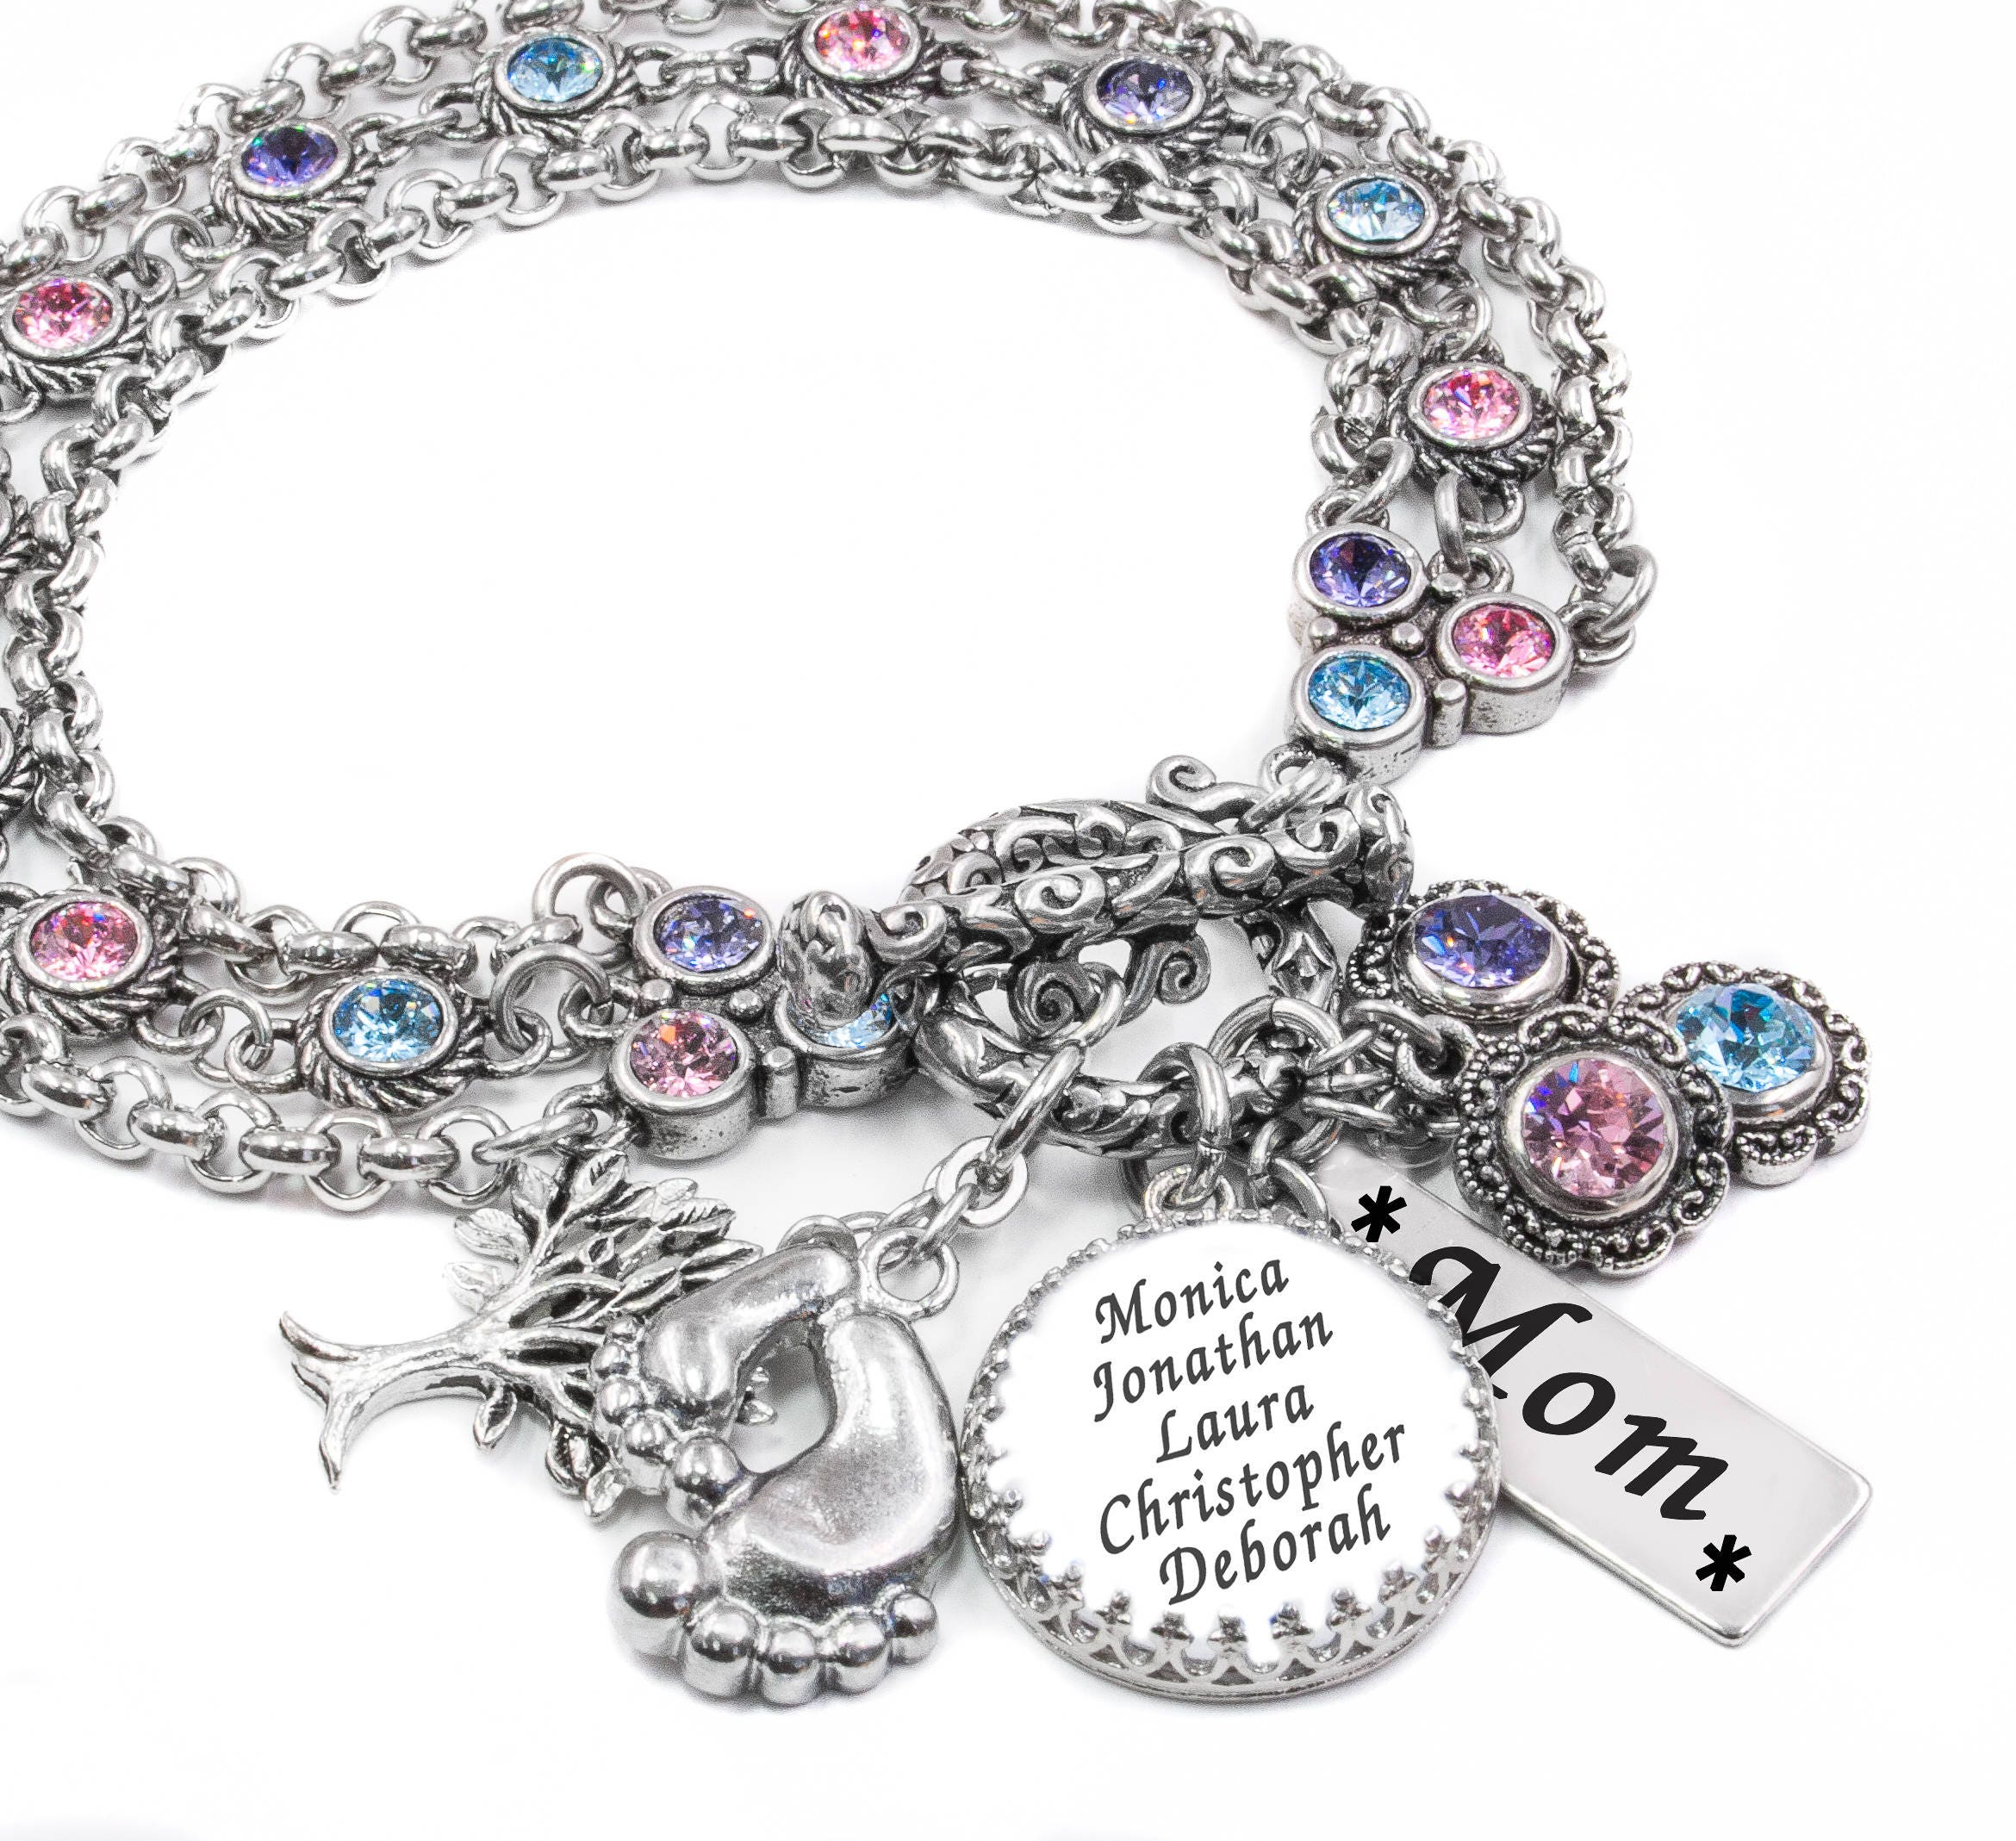 Mothers Charm Bracelet: Gifts For Mother Personalize Jewelry With Childrens Names